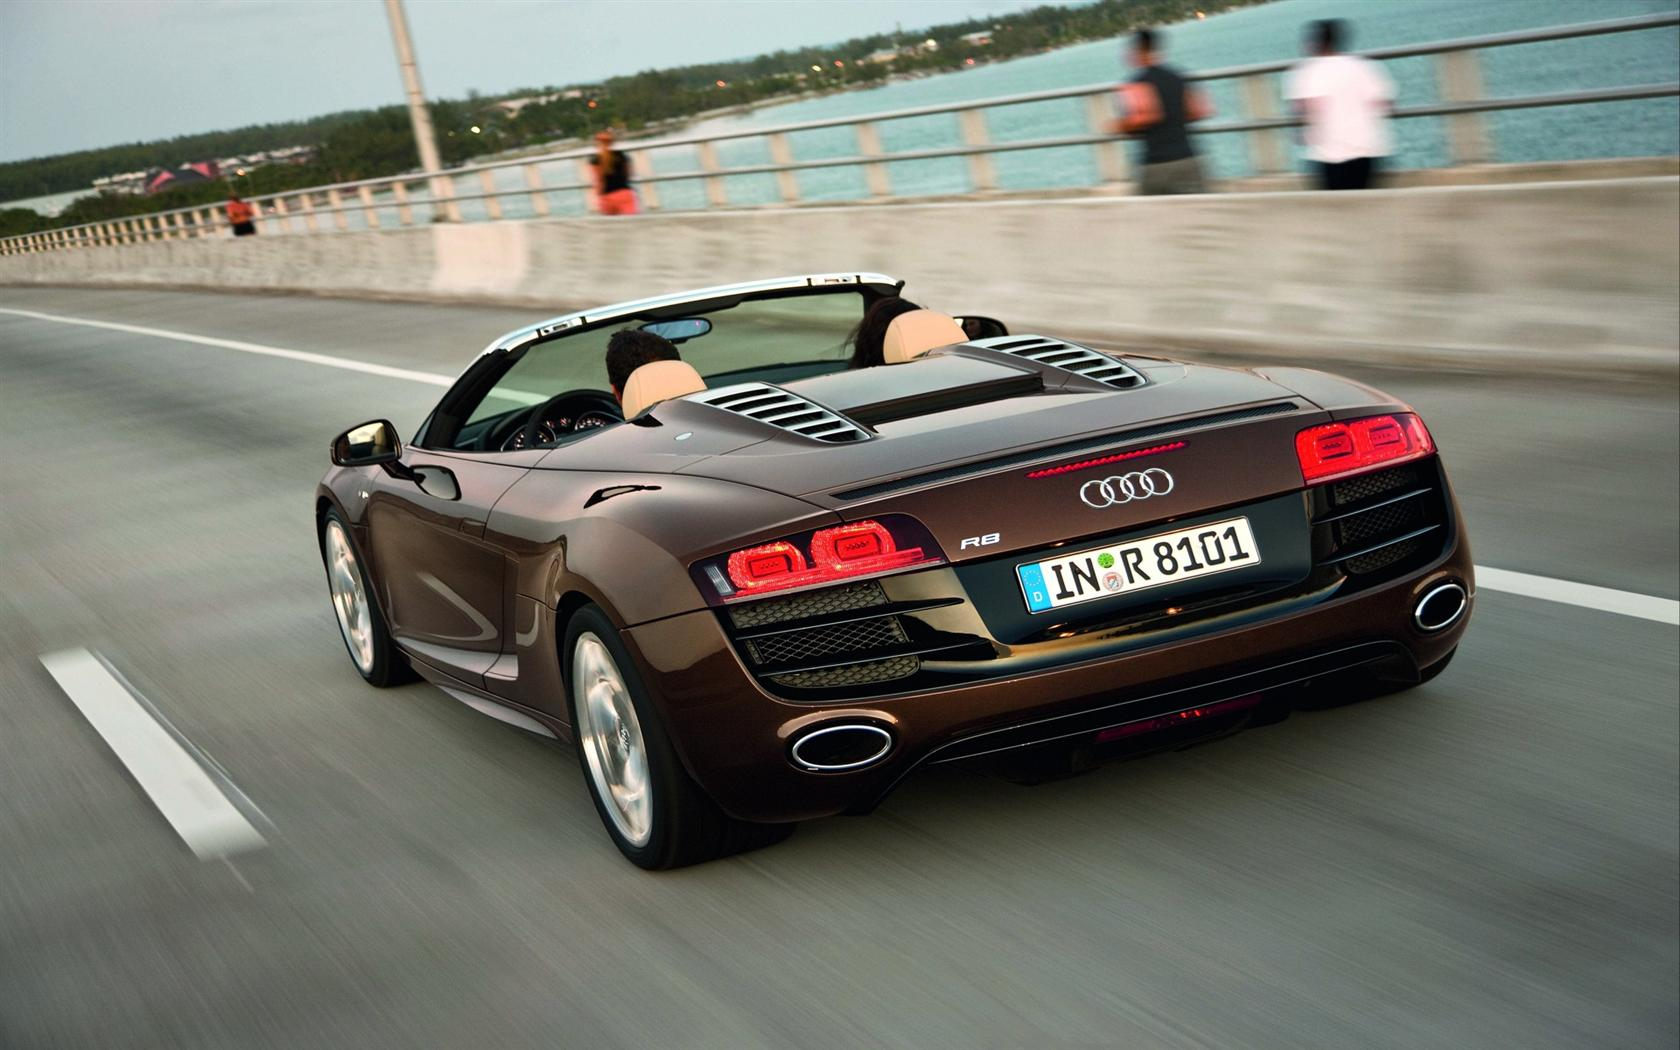 2010 audi r8 spyder images photo 2010 audi r8 spyder. Black Bedroom Furniture Sets. Home Design Ideas